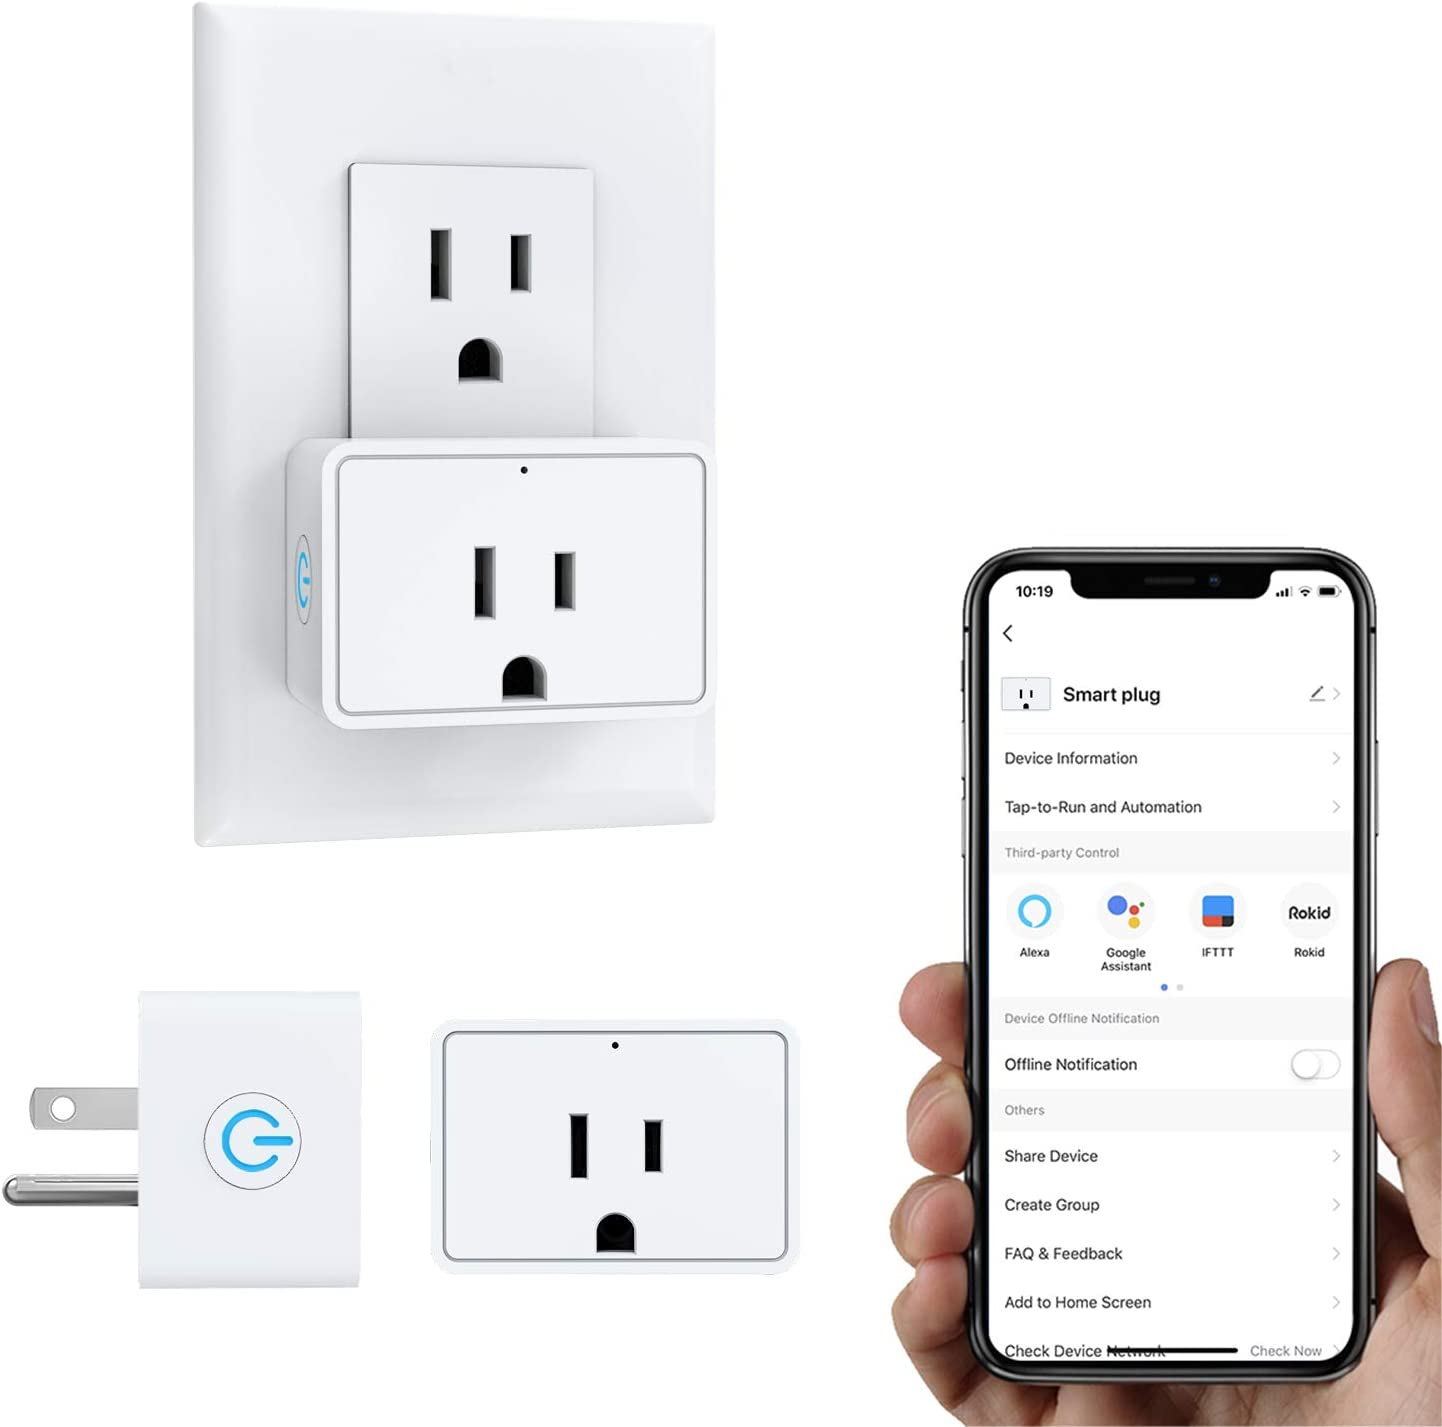 MoKo Smart Plug Mini WiFi Outlet, 2 Pack, Work with Alexa/Google Home/SmartThings, Voice/Remote Control, Timer Plug, Current Measurement & Monitoring, 16A, No Hub, Only Supports 2.4GHz Networ, White